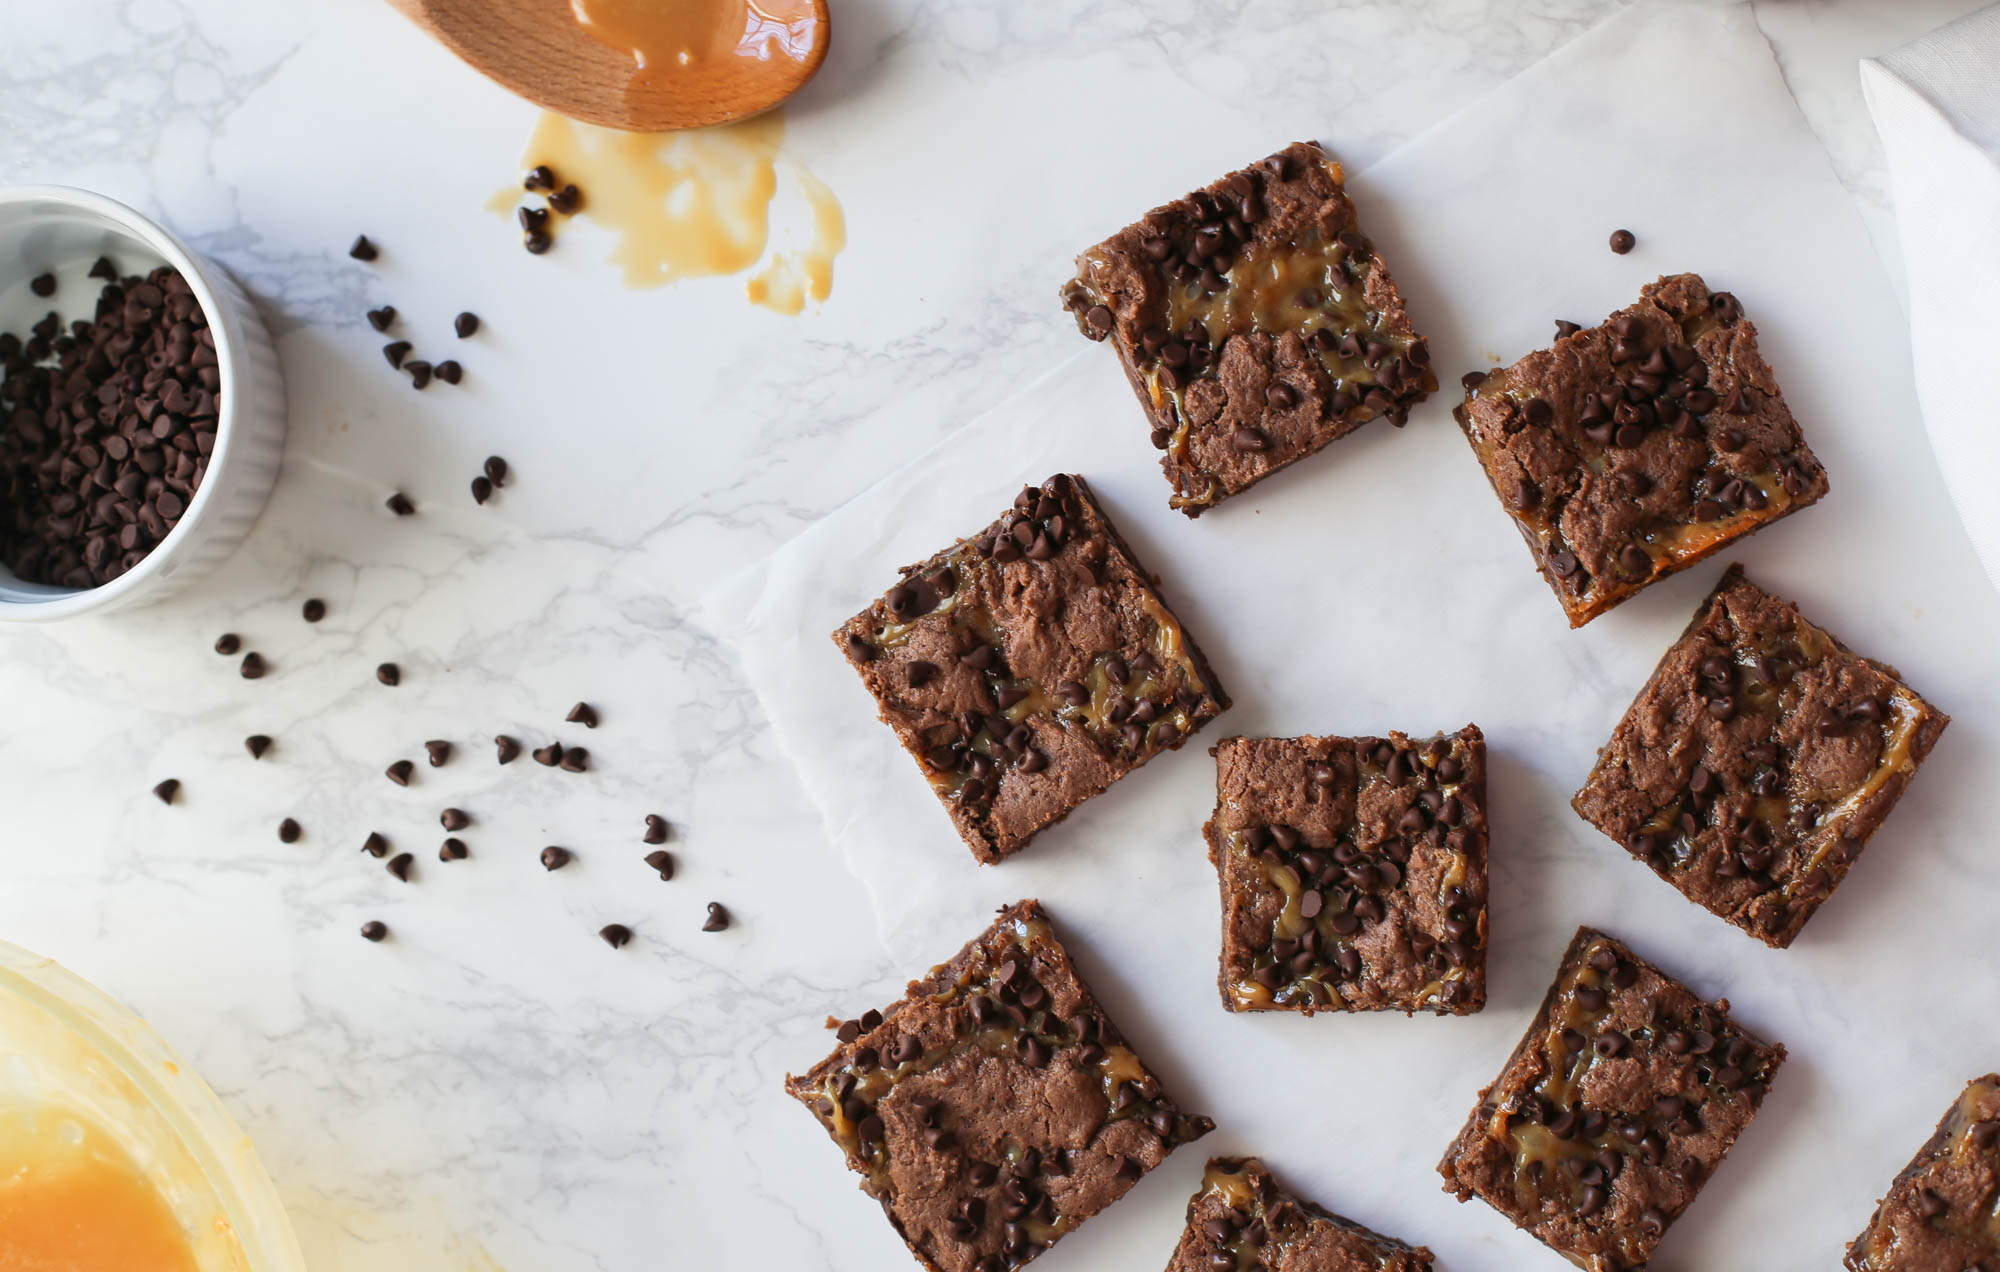 Chocolate Caramel Bars by The District Table